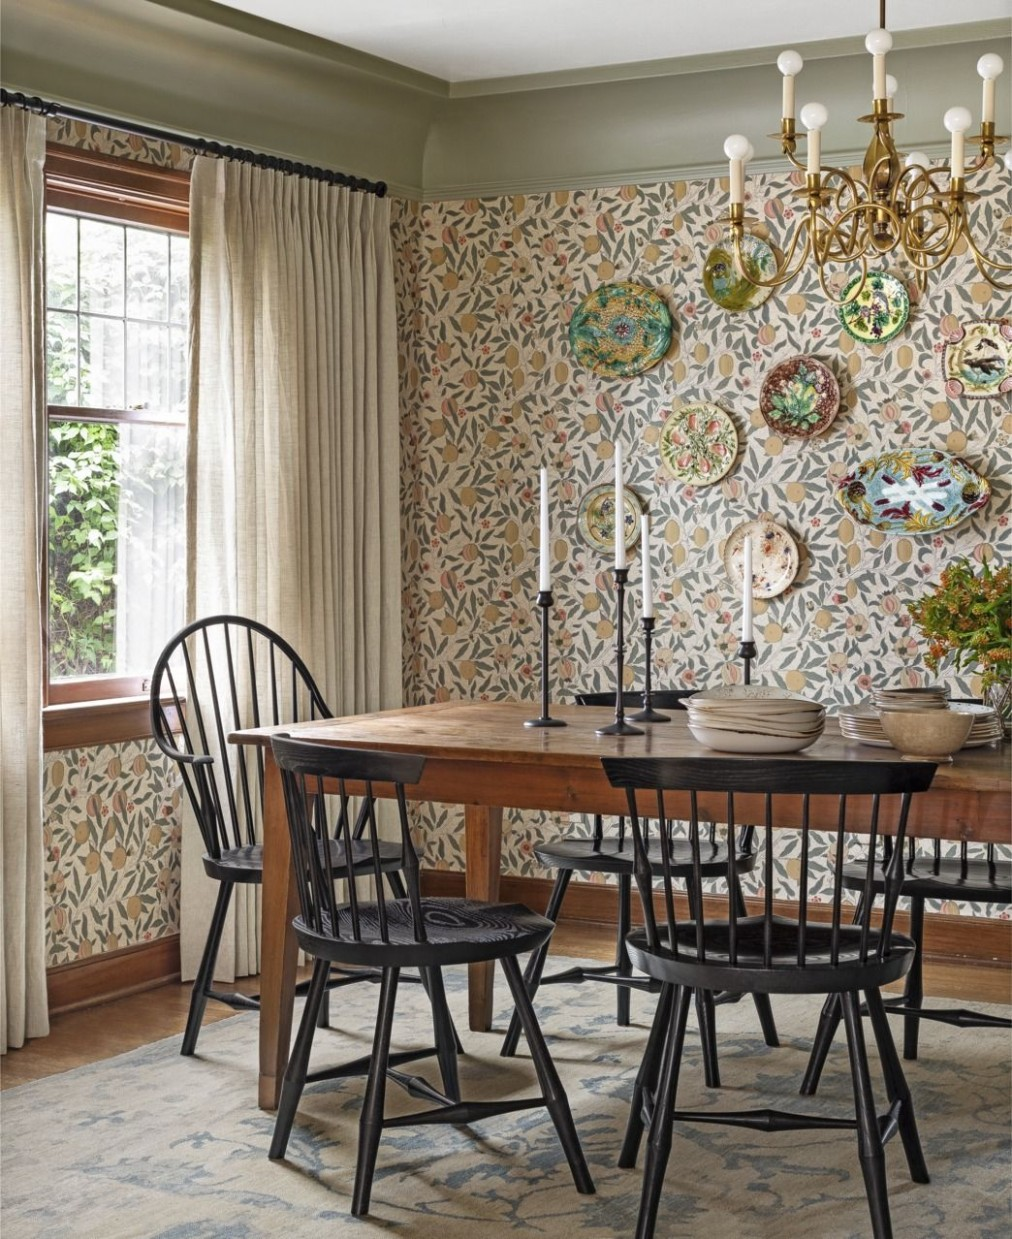 11 Best Dining Room Decorating Ideas - Country Dining Room Decor - Dining Table Ideas Uk